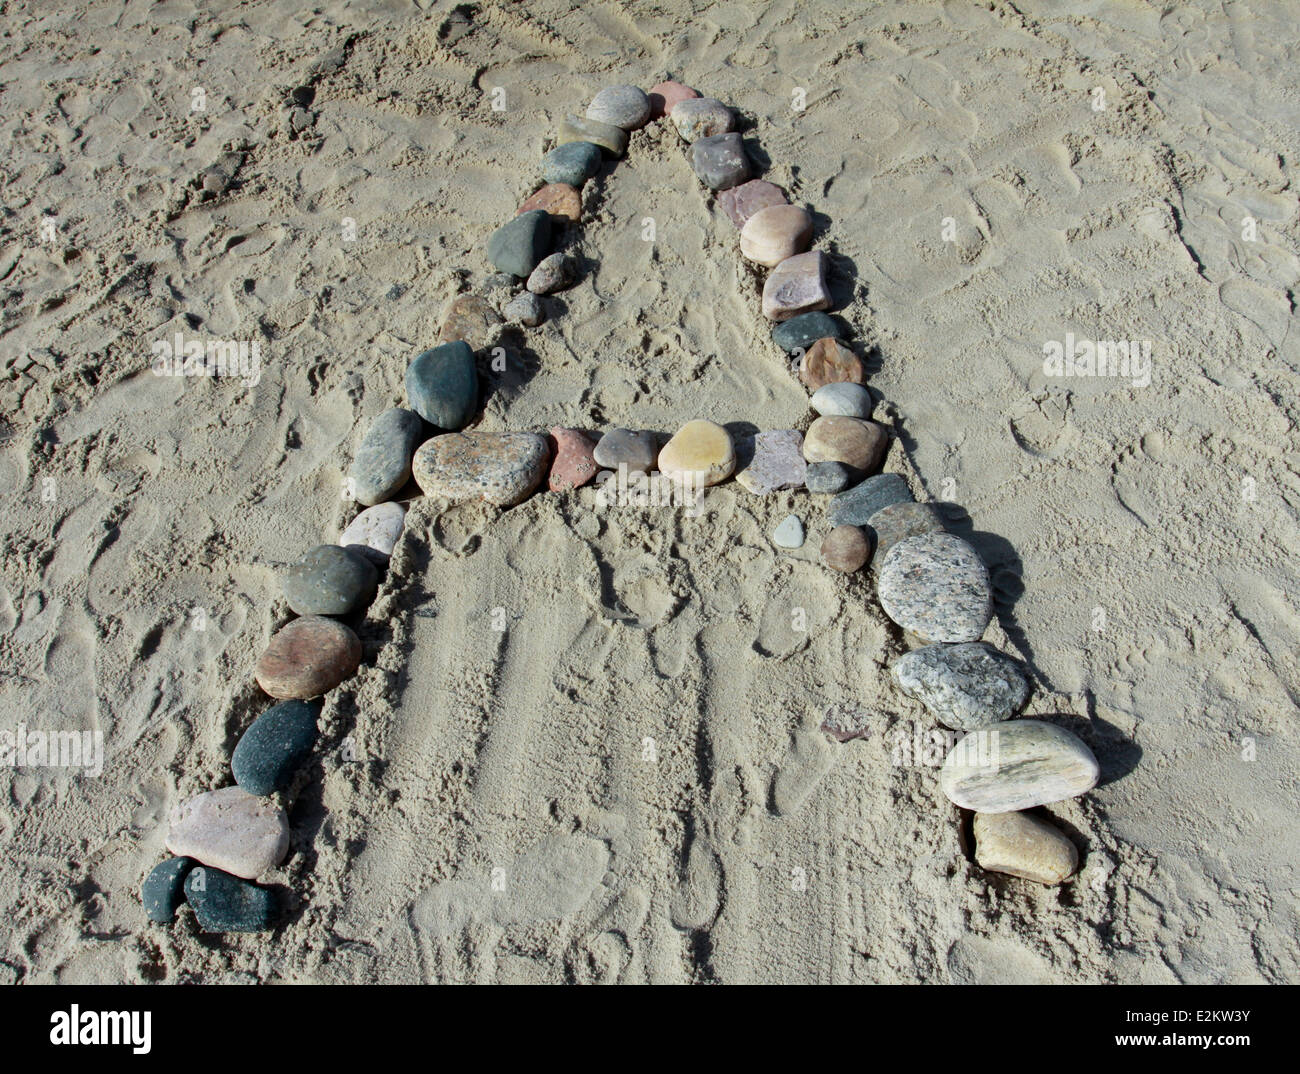 Letter A of stones on sandy beach - Stock Image